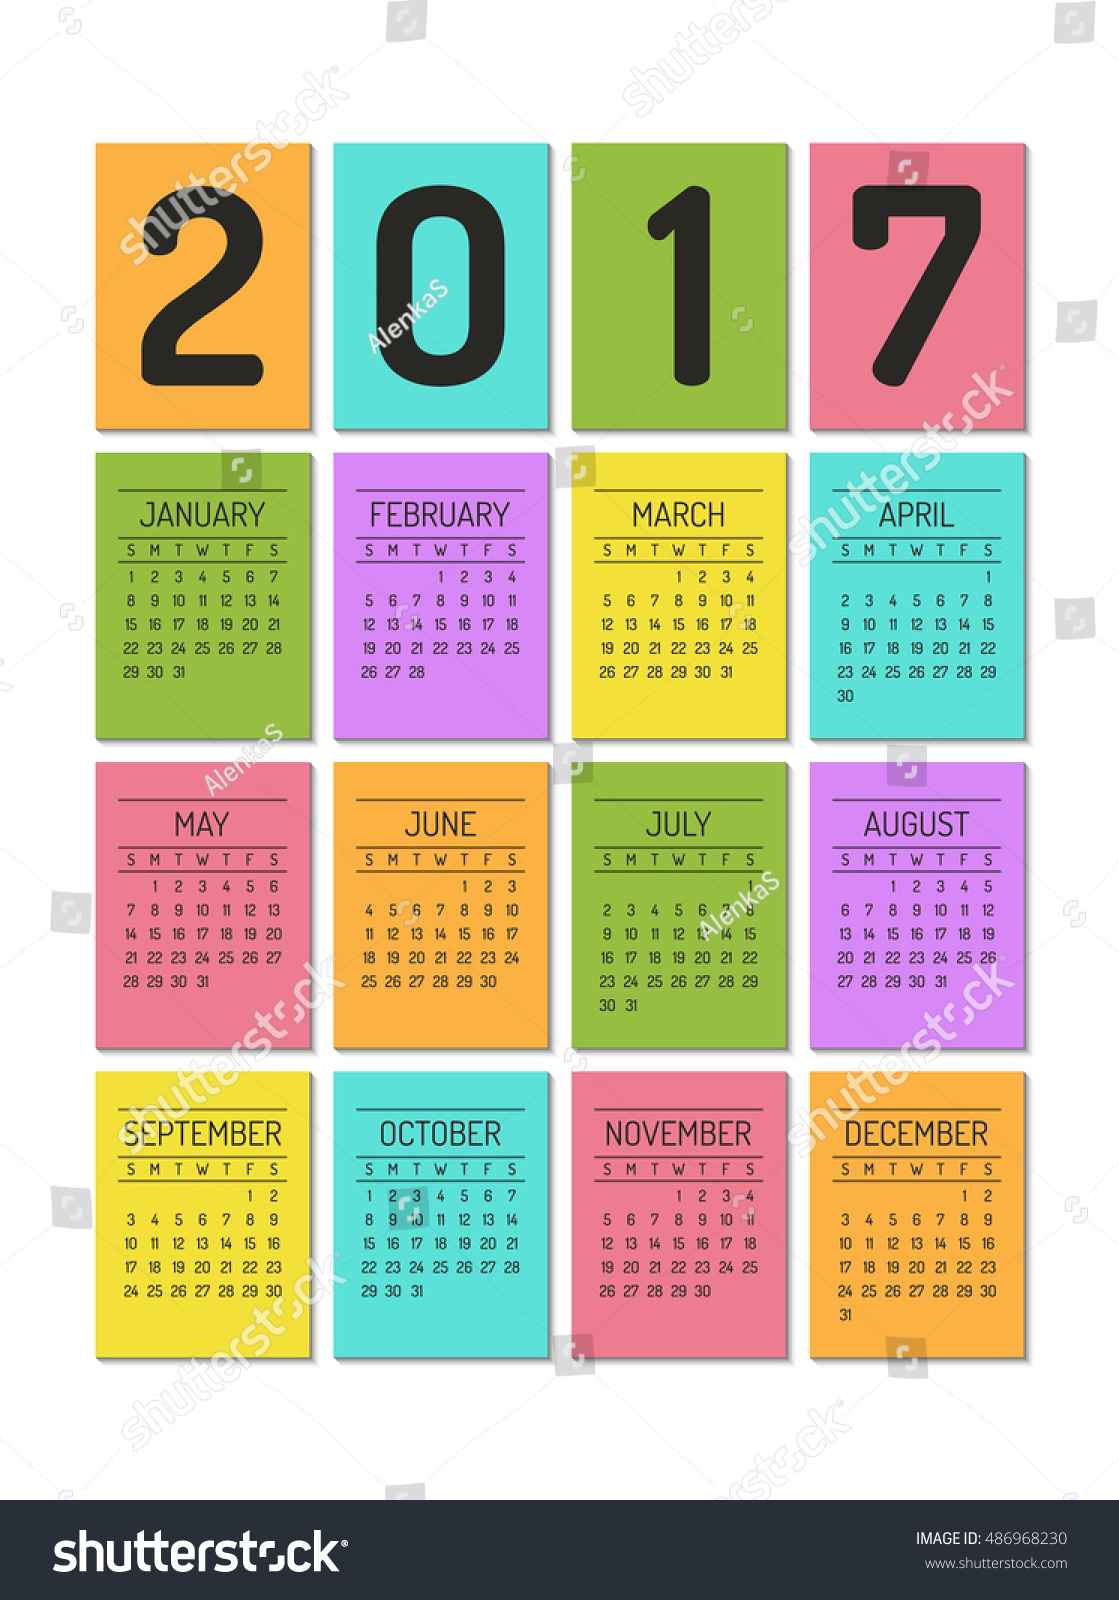 color block calendar template for 2017 year week starts on sunday 486968230